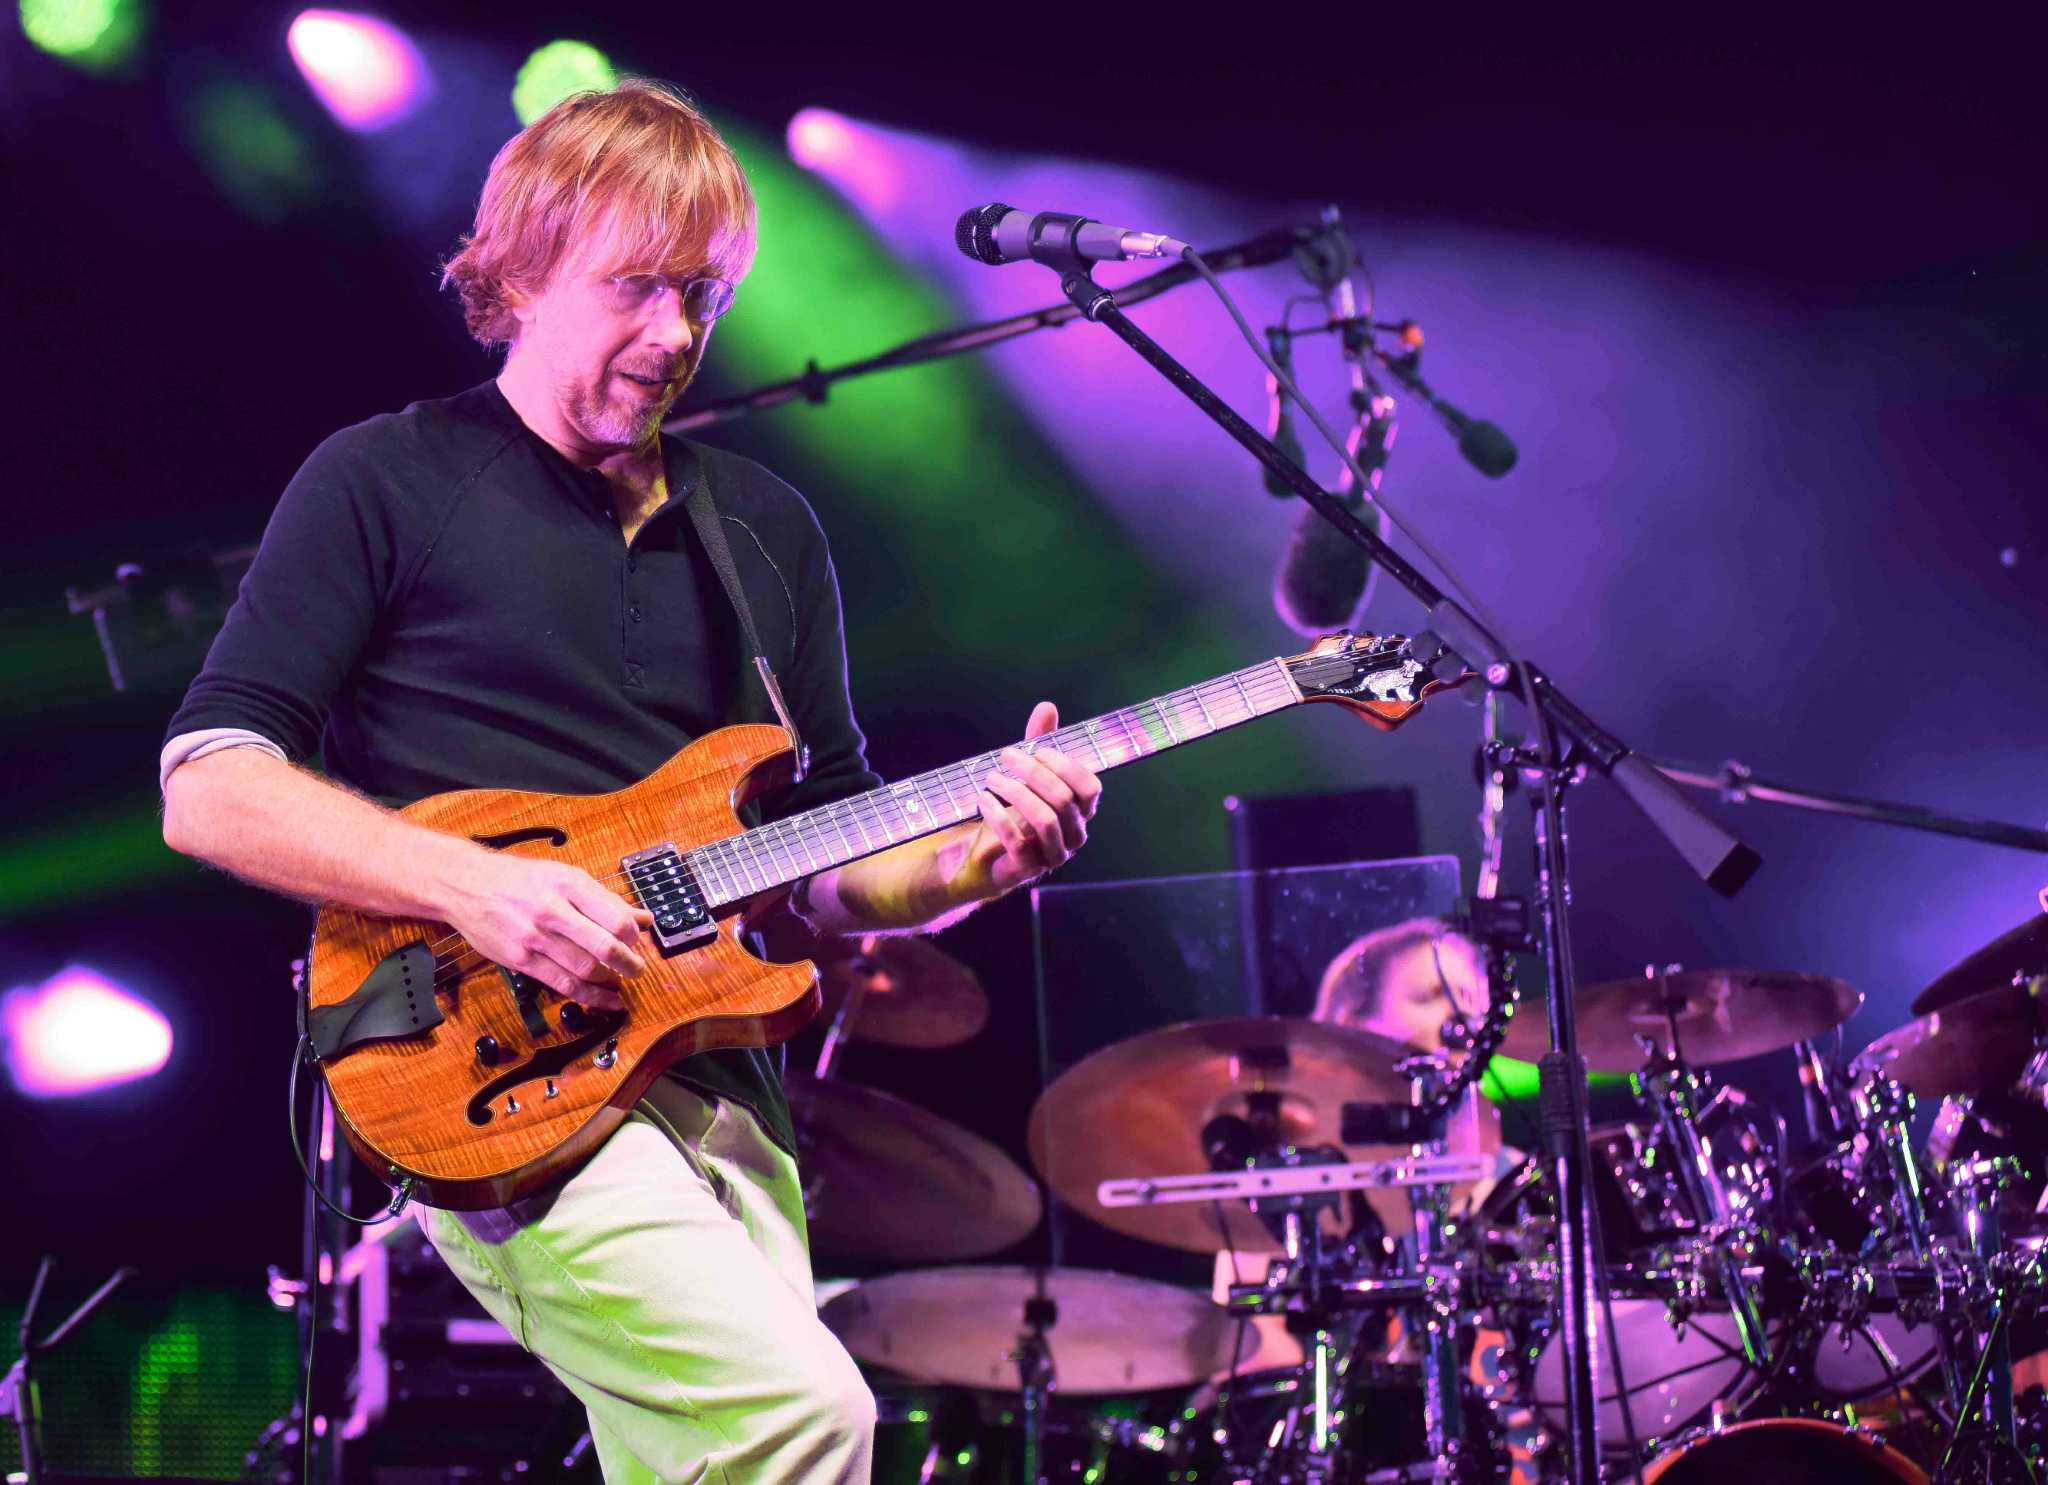 Phish sells out two CT shows: Take a look back at some of their best Nutmeg State shows